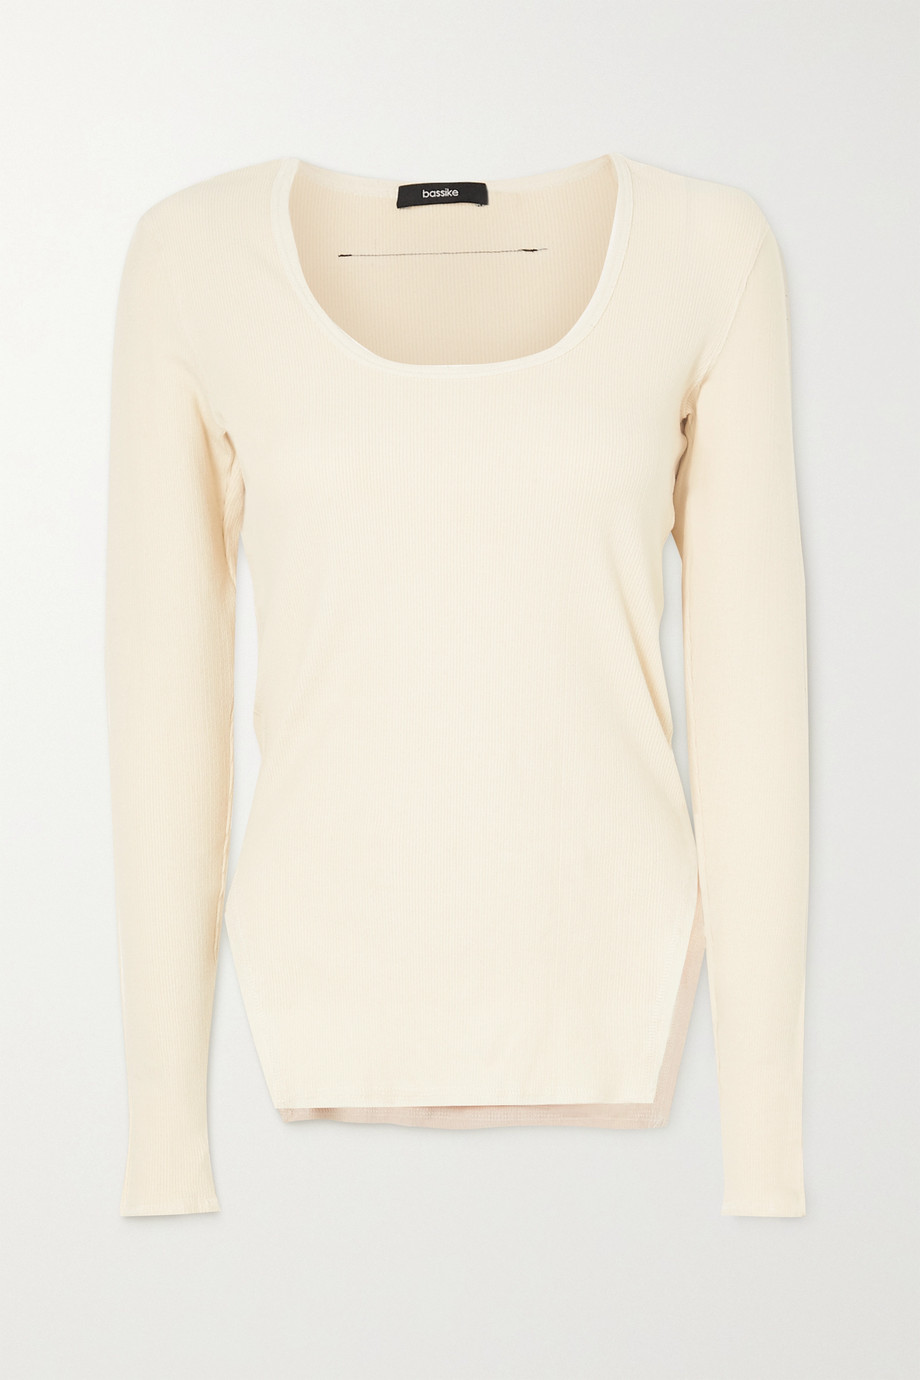 Bassike + NET SUSTAIN ribbed stretch-cotton top